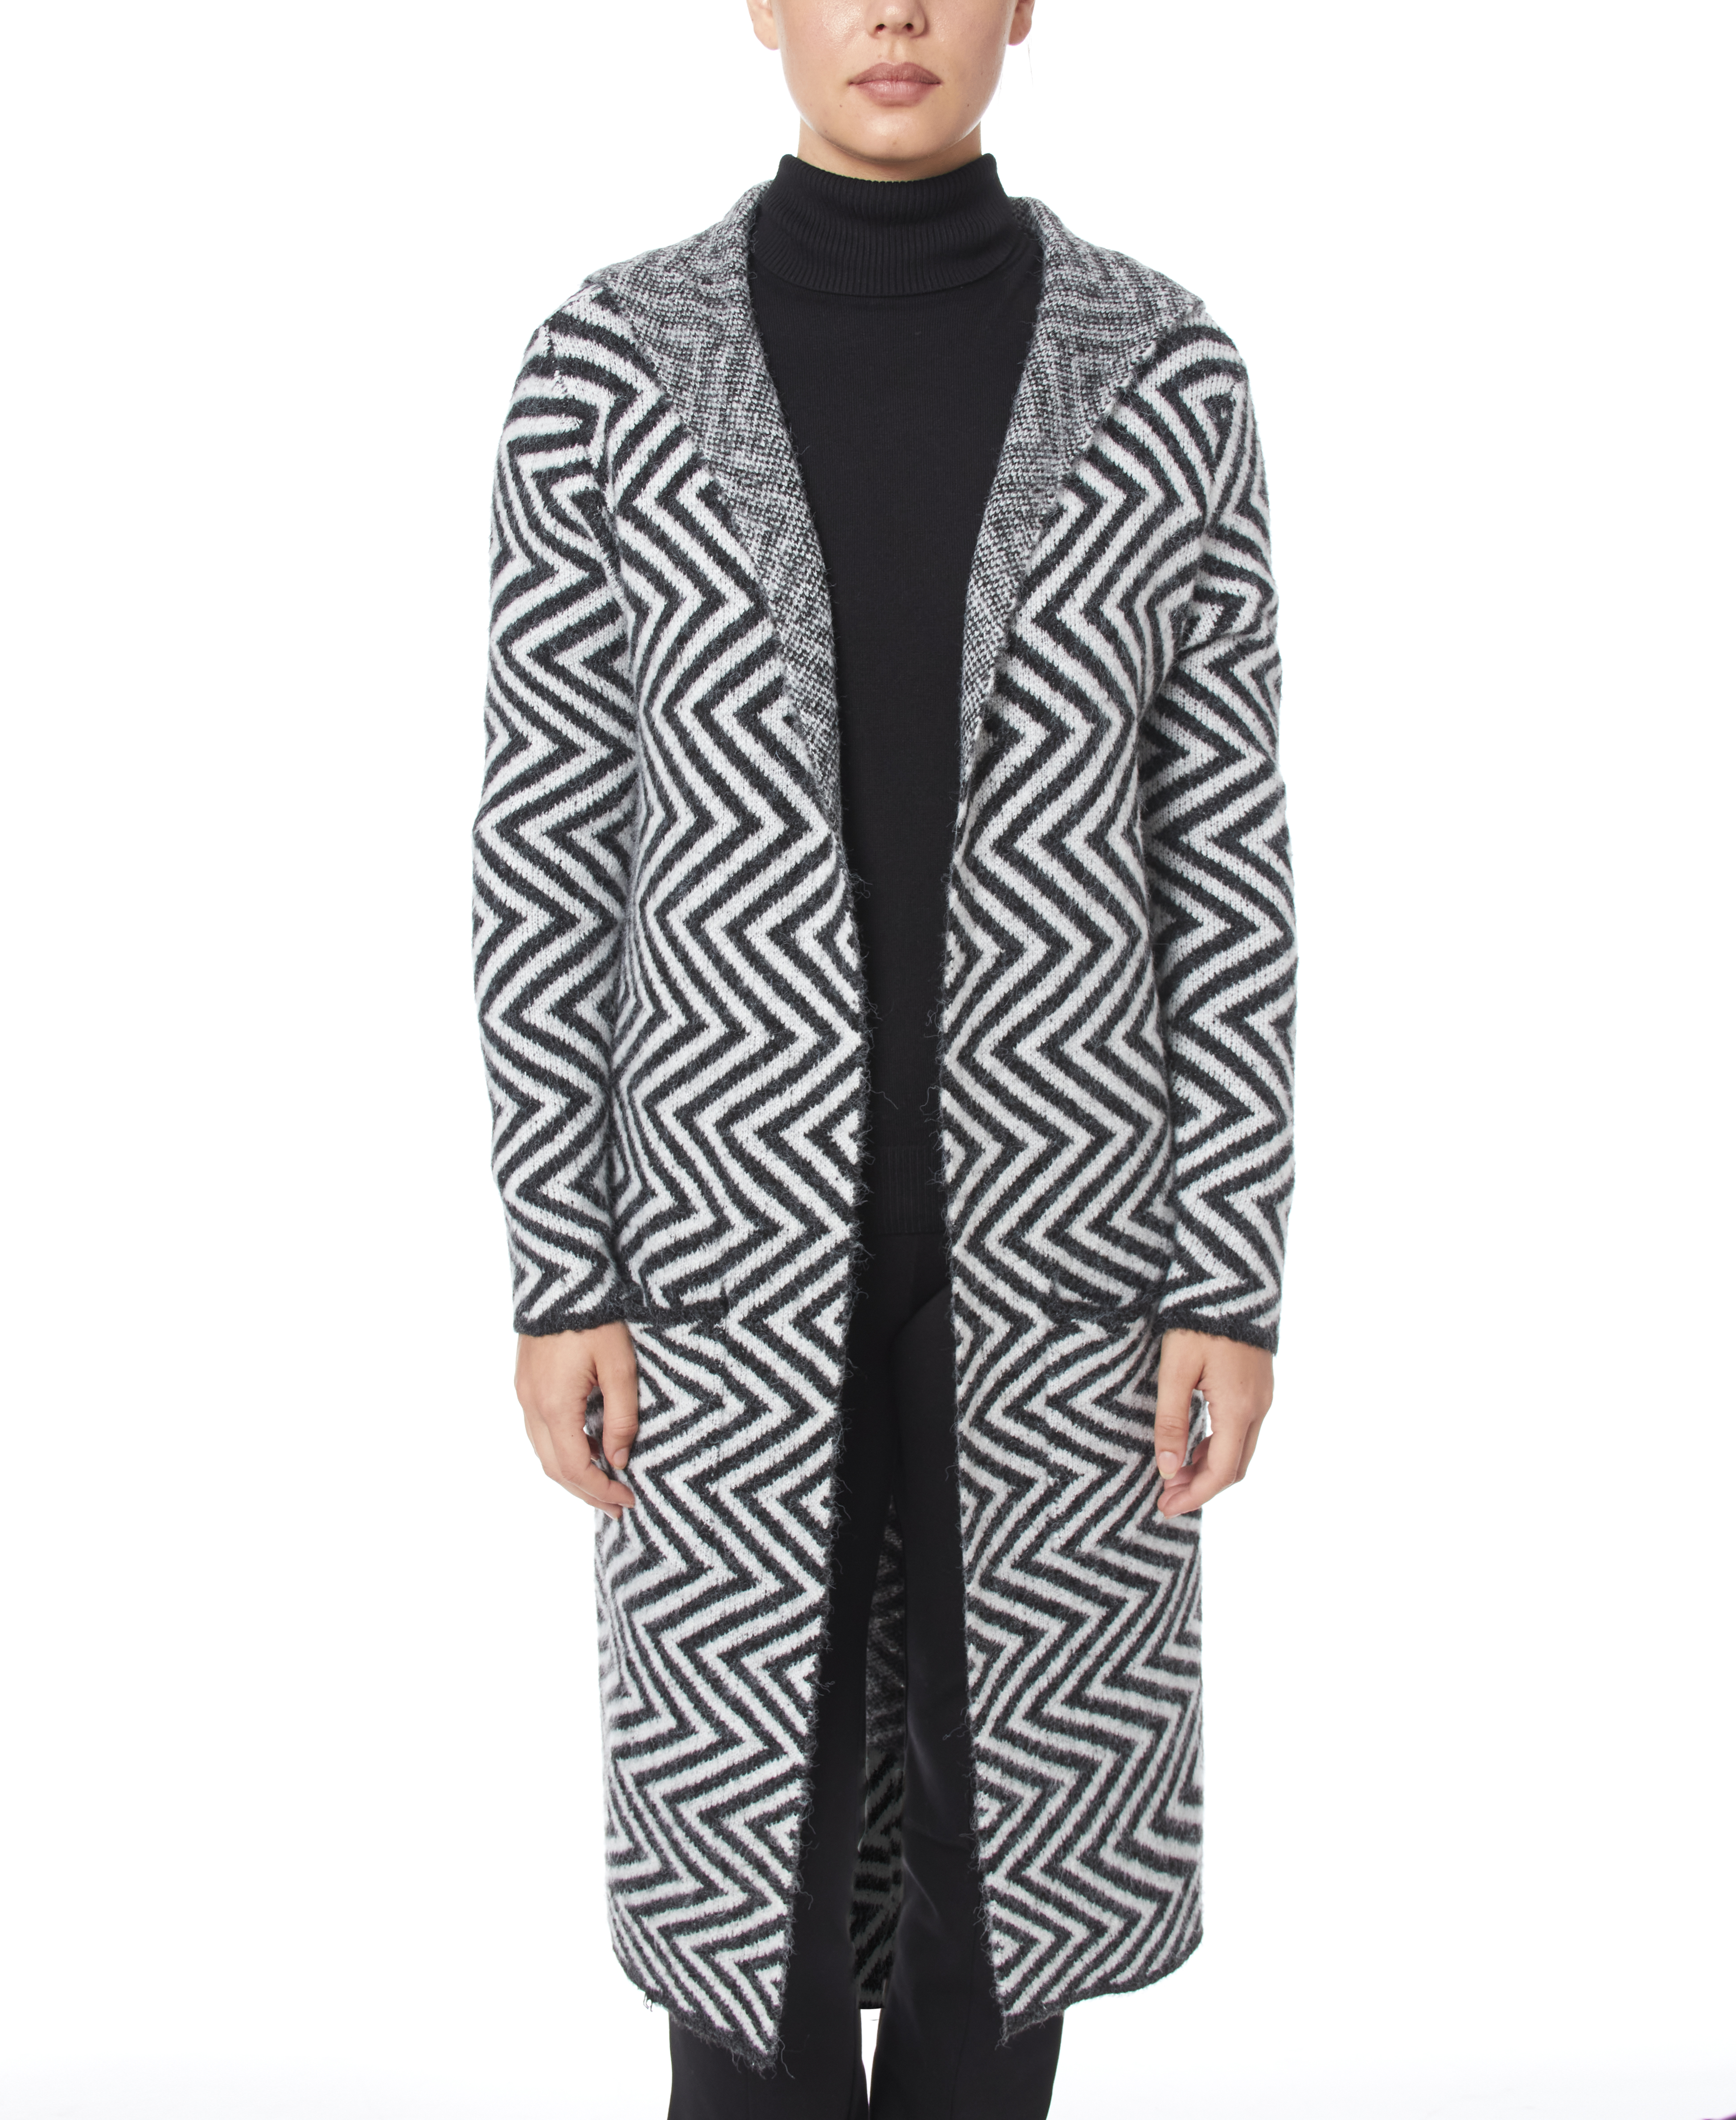 A good mix of comfort and style, this Joseph A maxi-length cardigan is the essential cozy layering element to compliment your wardrobe.